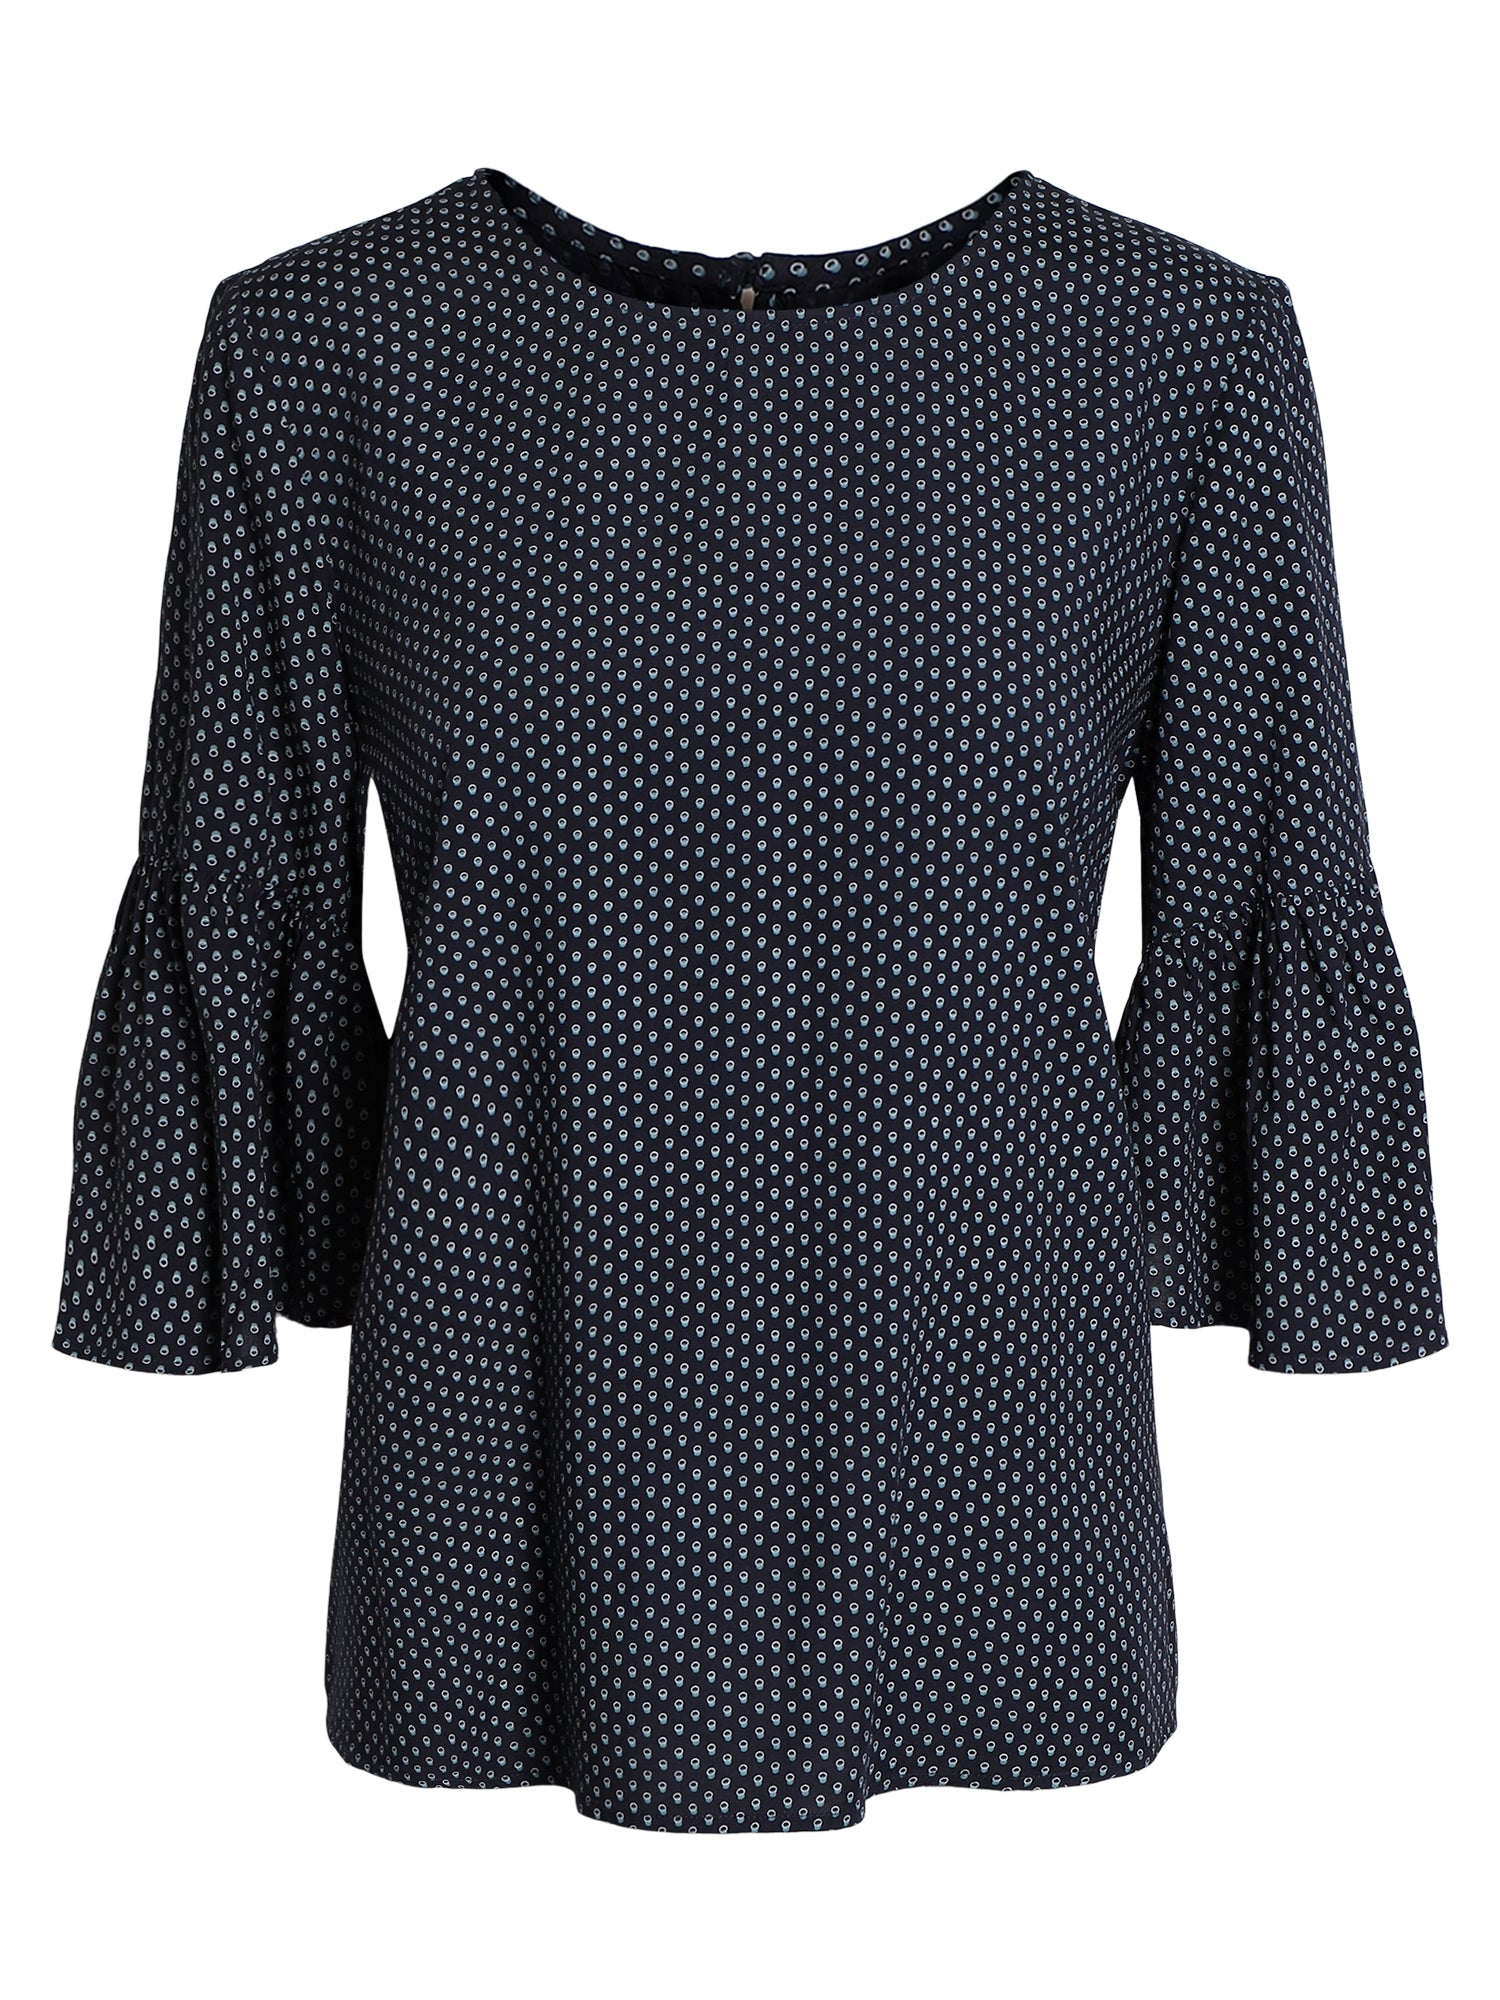 Image of   Bluse med 3/4 ærmer - Navy Mix